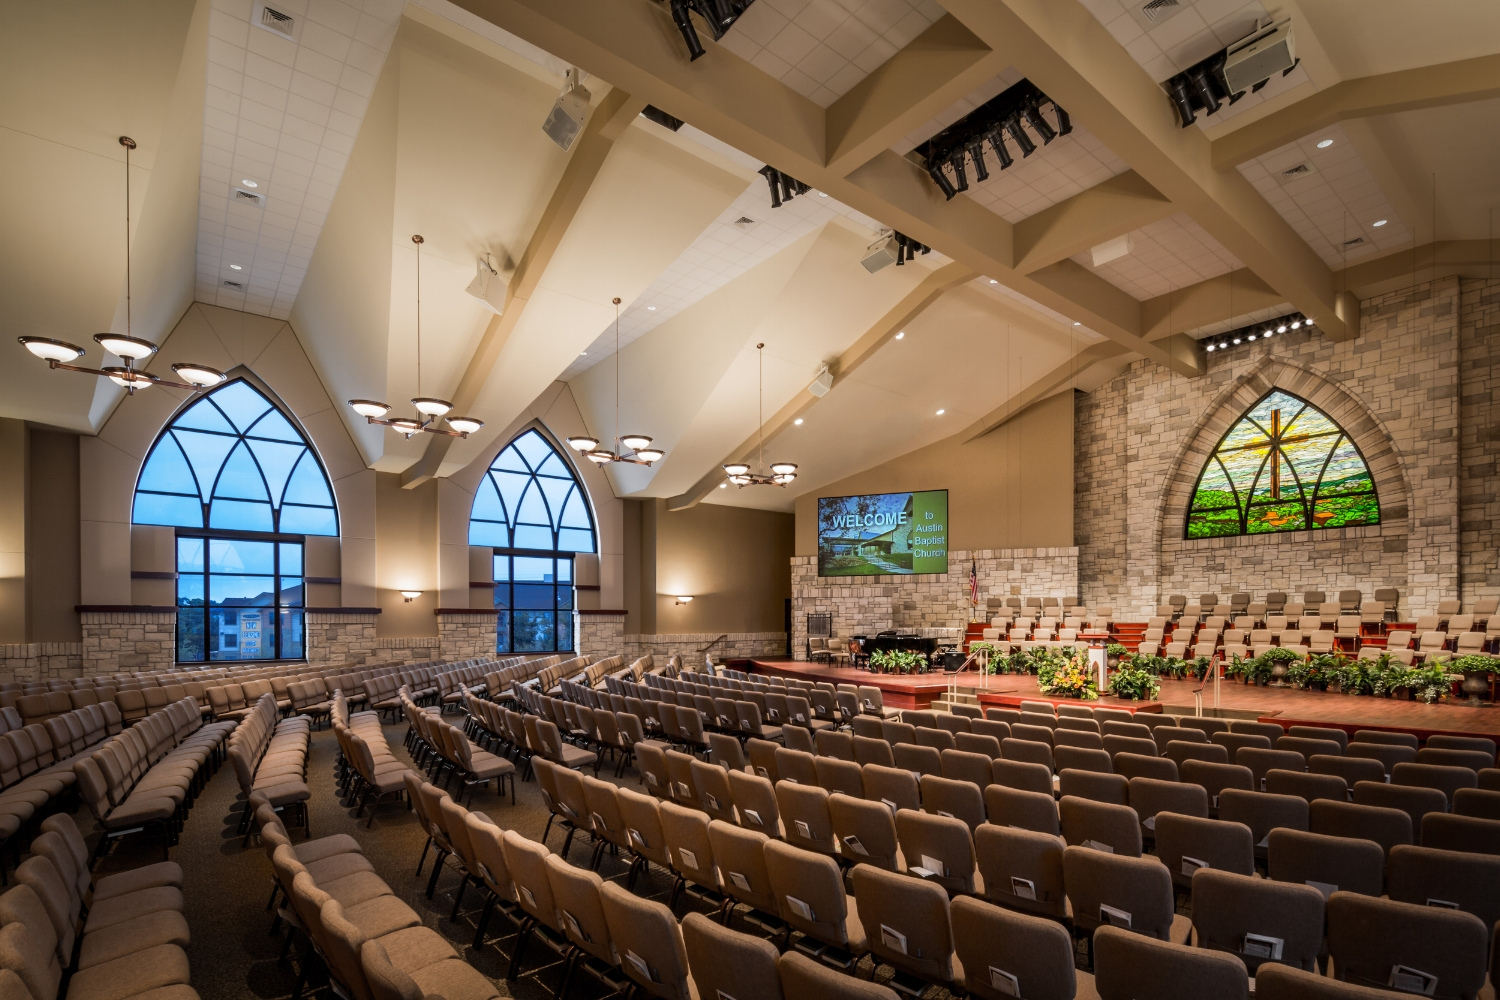 Austin Baptist Church-0467-Edit2.jpg